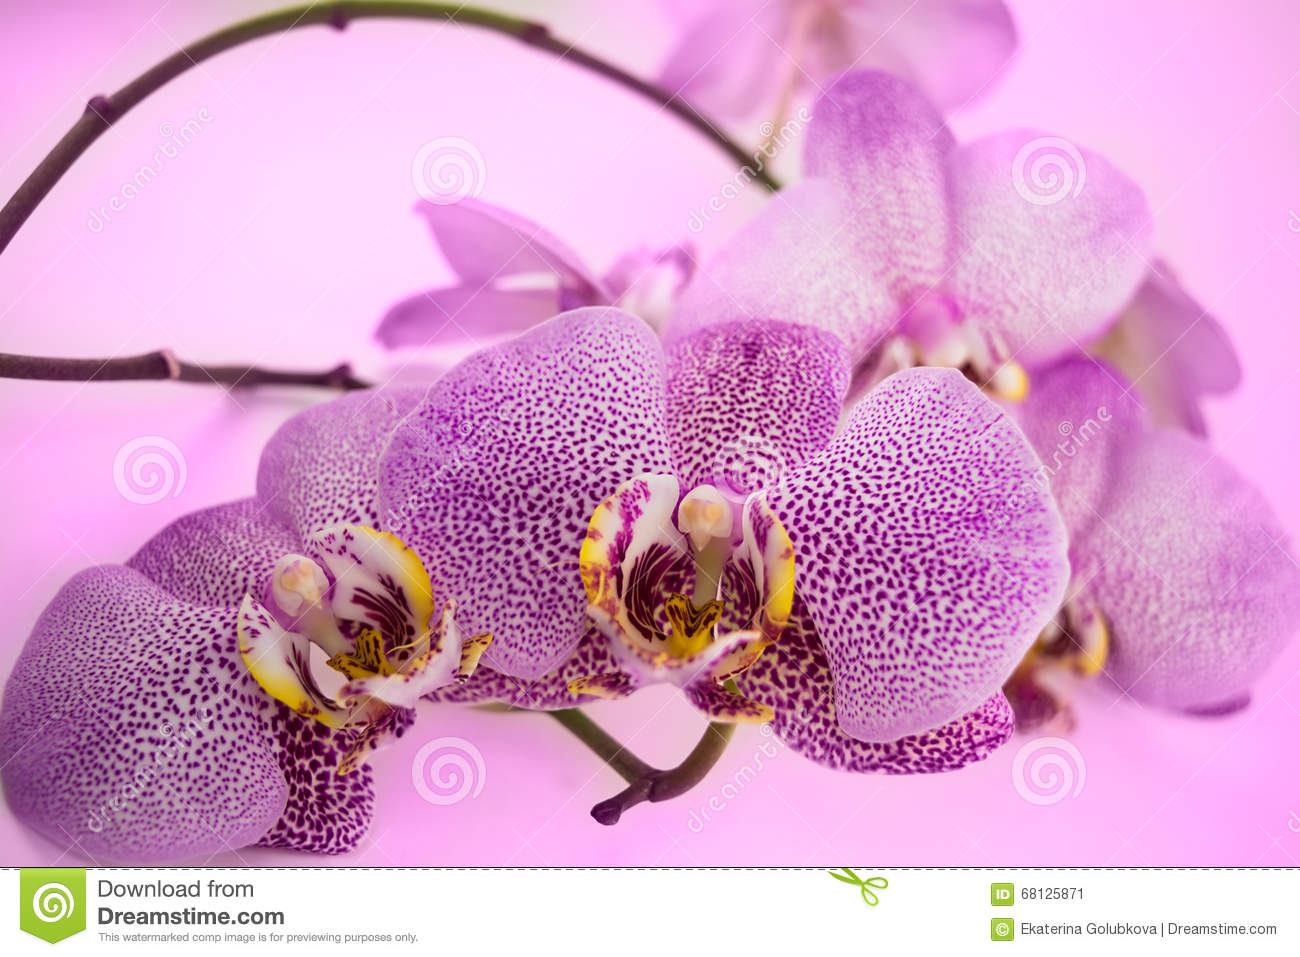 Leopard Orchid clipart #14, Download drawings